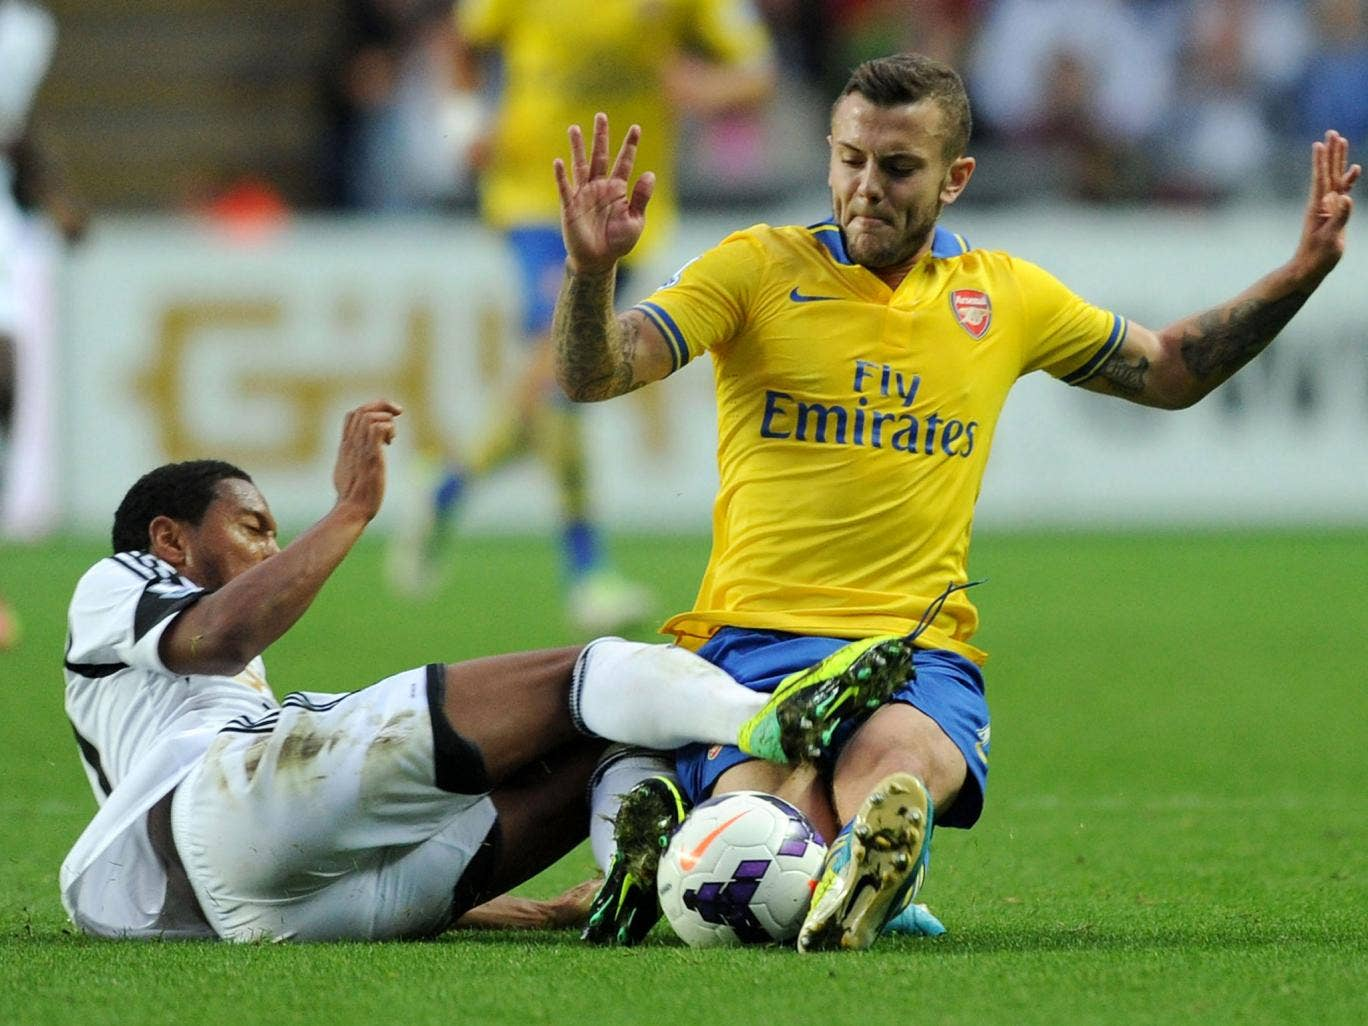 Jack Wilshere dives in on Jonathan De Guzman during Arsenal's clash with Swansea